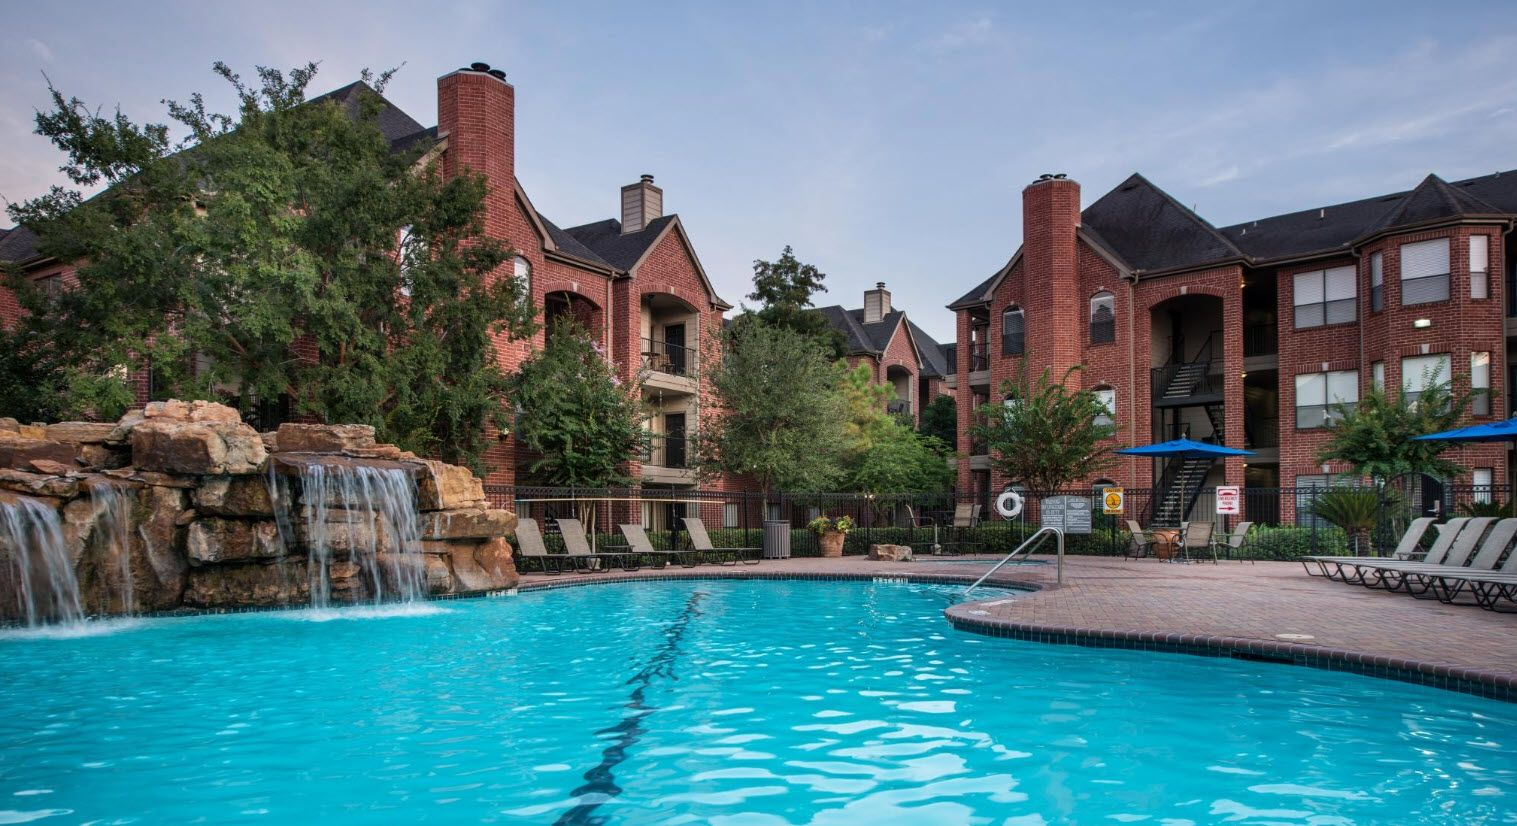 Pool and apartment buildings